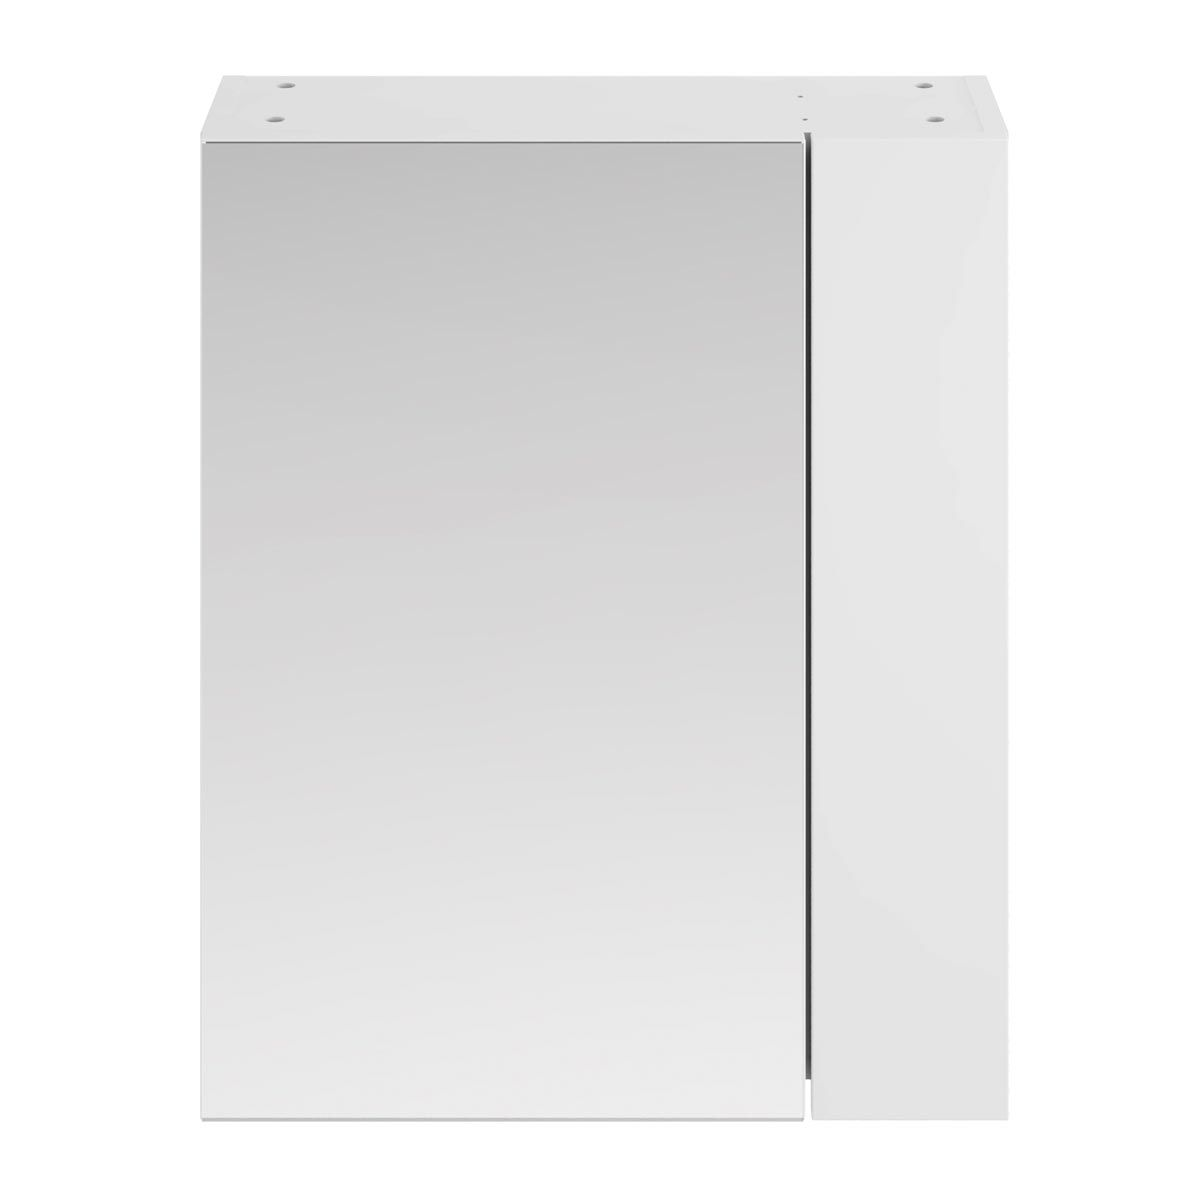 Nuie Athena Gloss White Double Mirrored Bathroom Cabinet 600mm